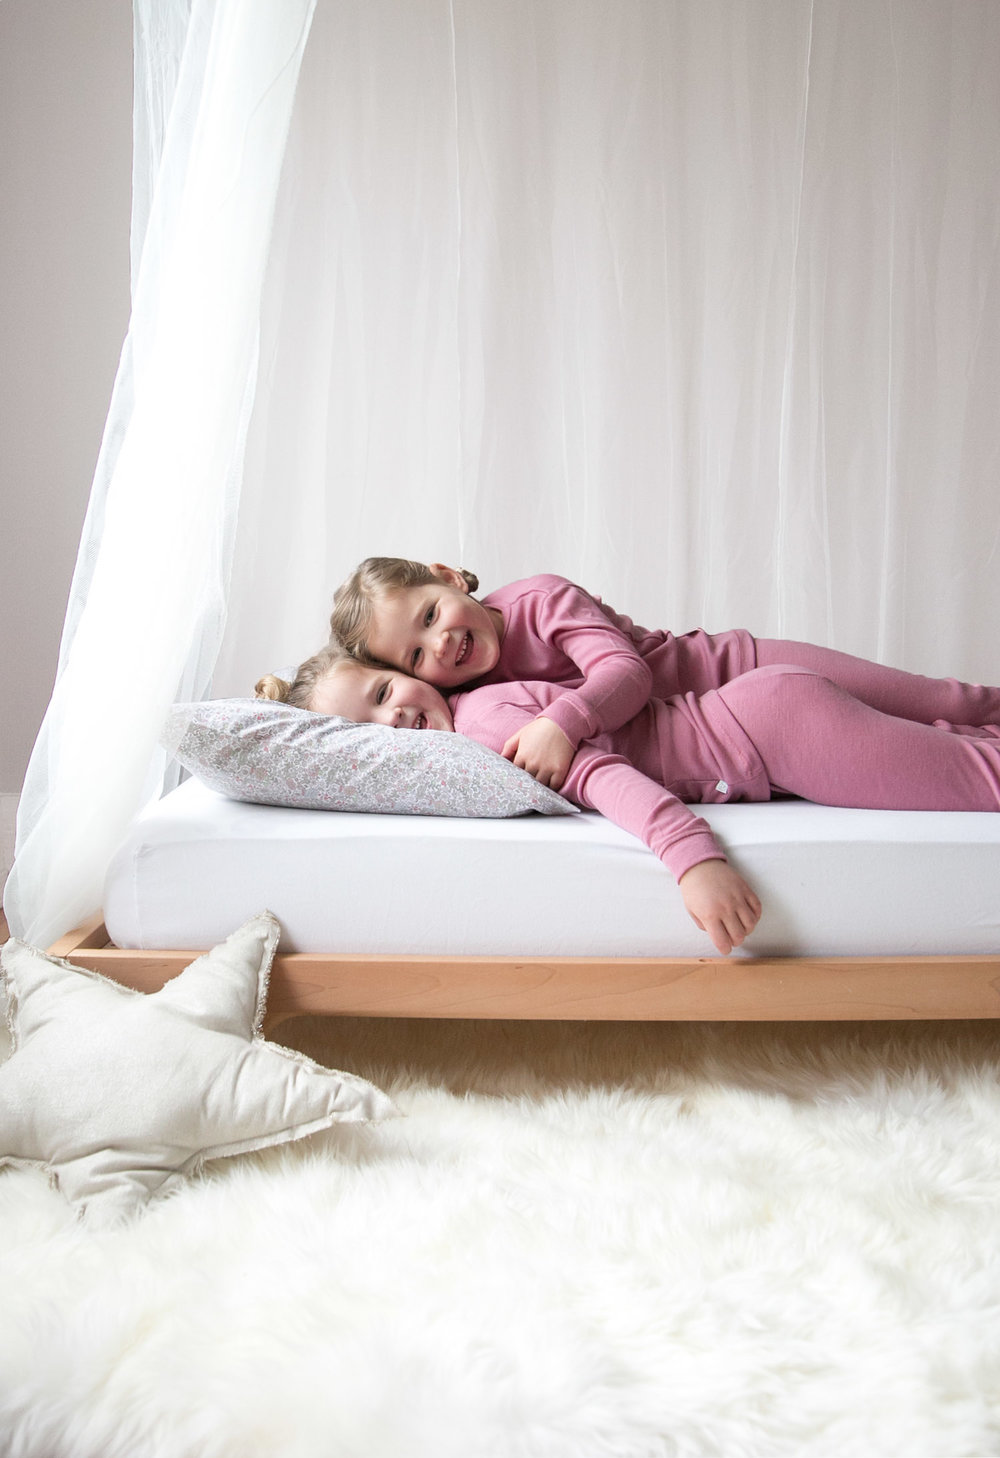 girls in merino wool pajamas from simply merino